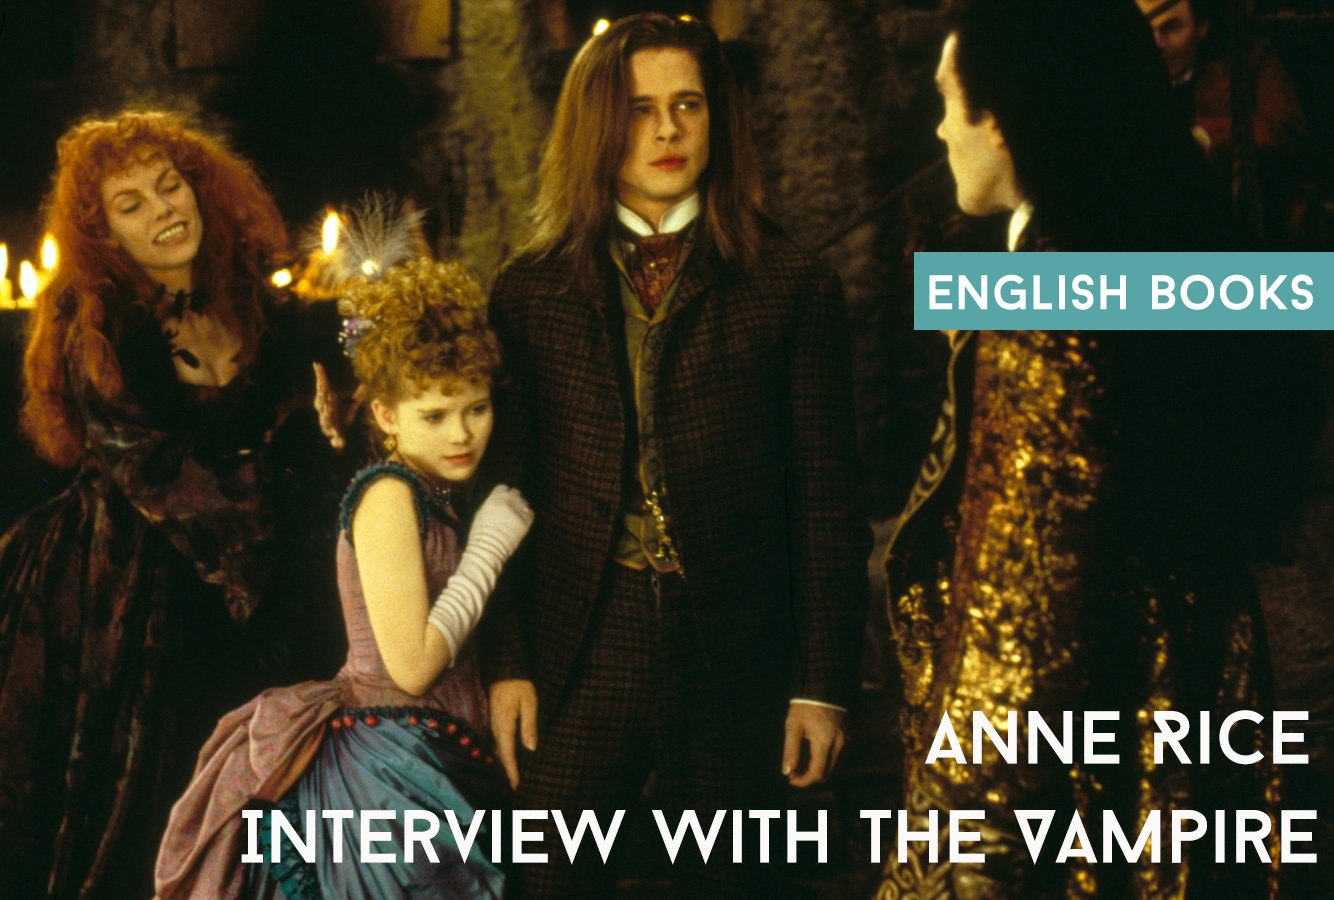 Anne Rice Interview With The Vampire Read And Download Epub Pdf Fb2 Mobi